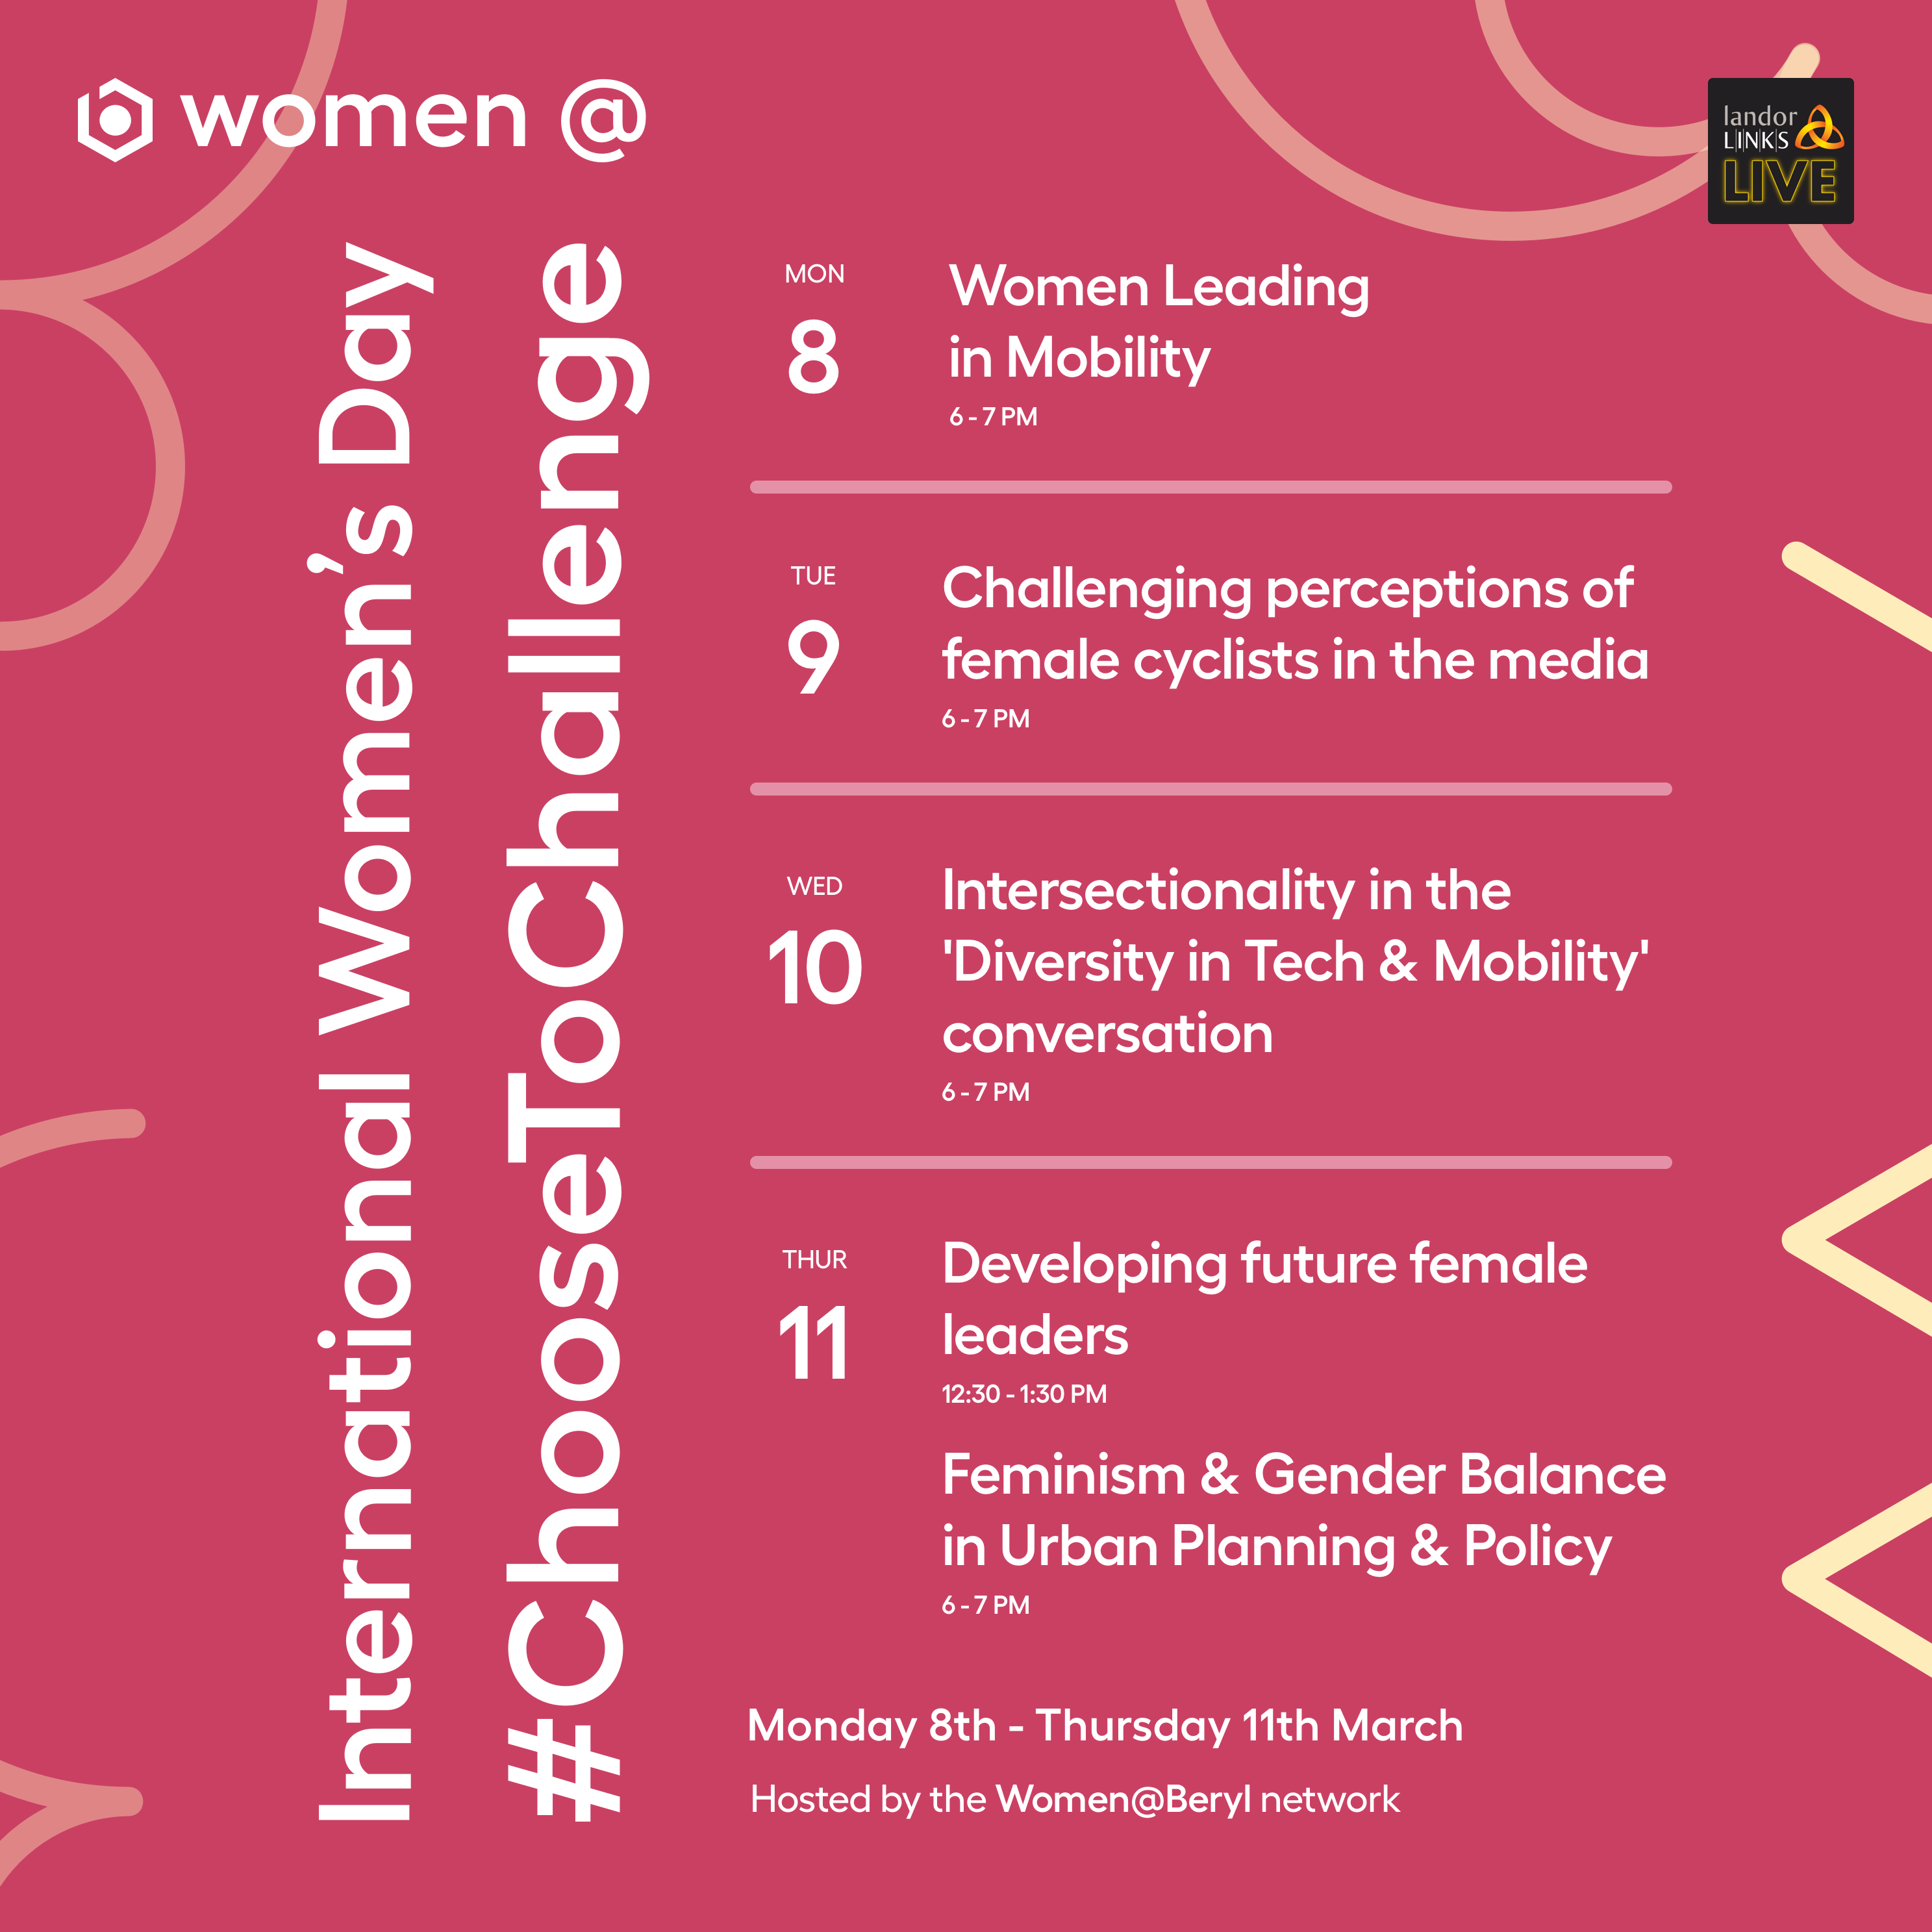 The Women@Beryl network will host its inaugural International Women's Day series to celebrate this year's theme #ChooseToChallenge – raise awareness against bias and take action for equality in cycling and micromobility.